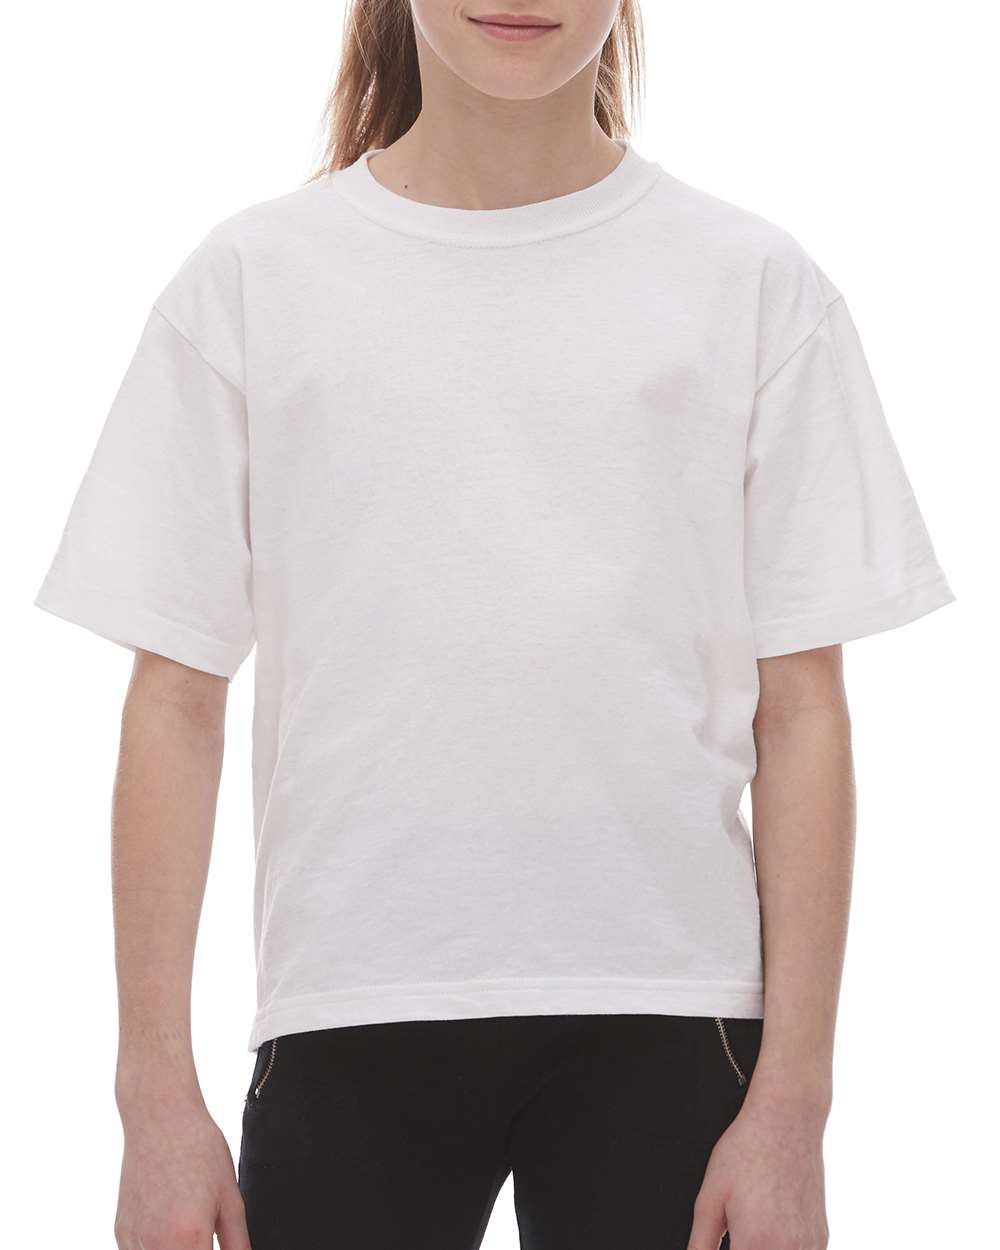 M&O - T-shirt Enfant Gold Soft Touch